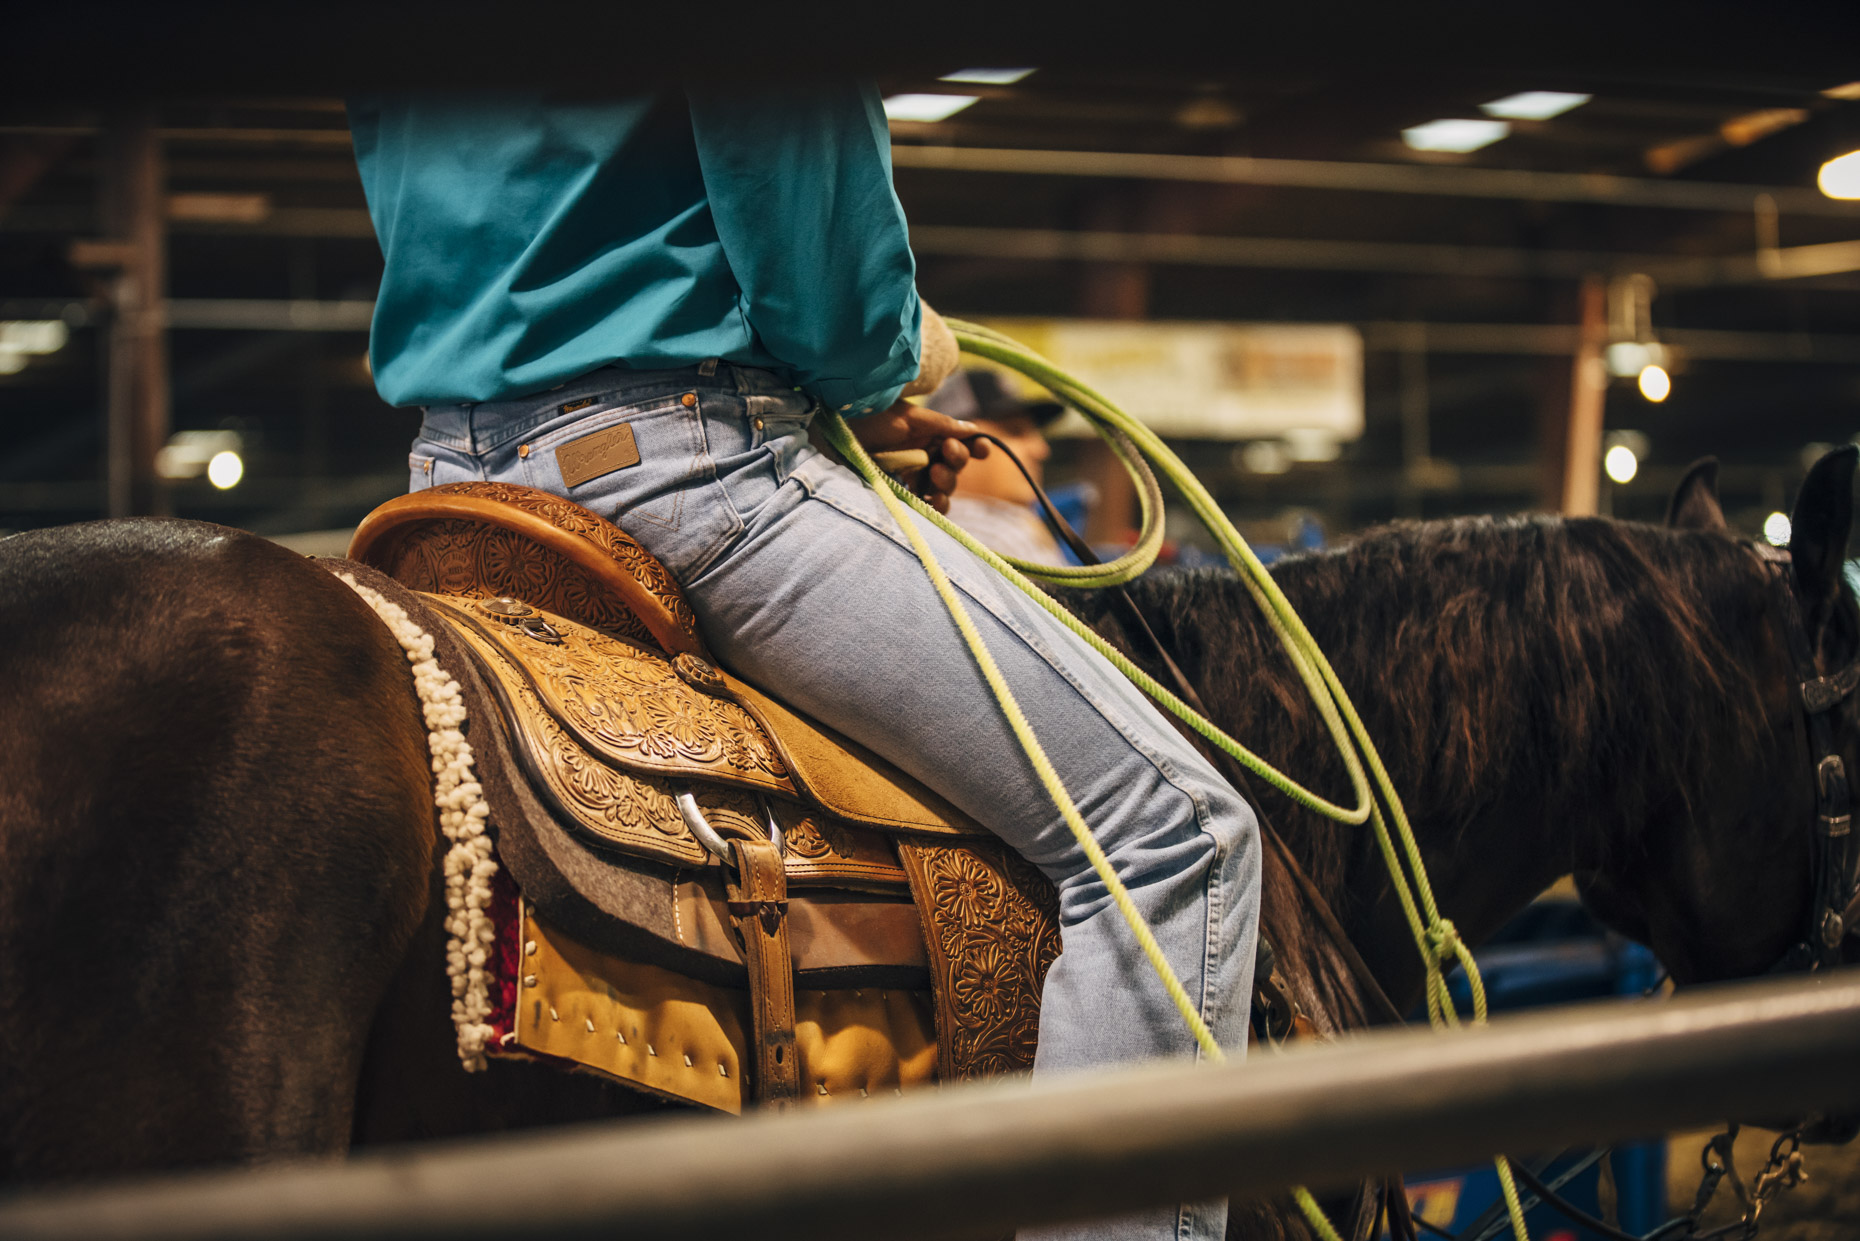 Tight butt shot of man wearing wrangerl jeans riding horse in rodeo